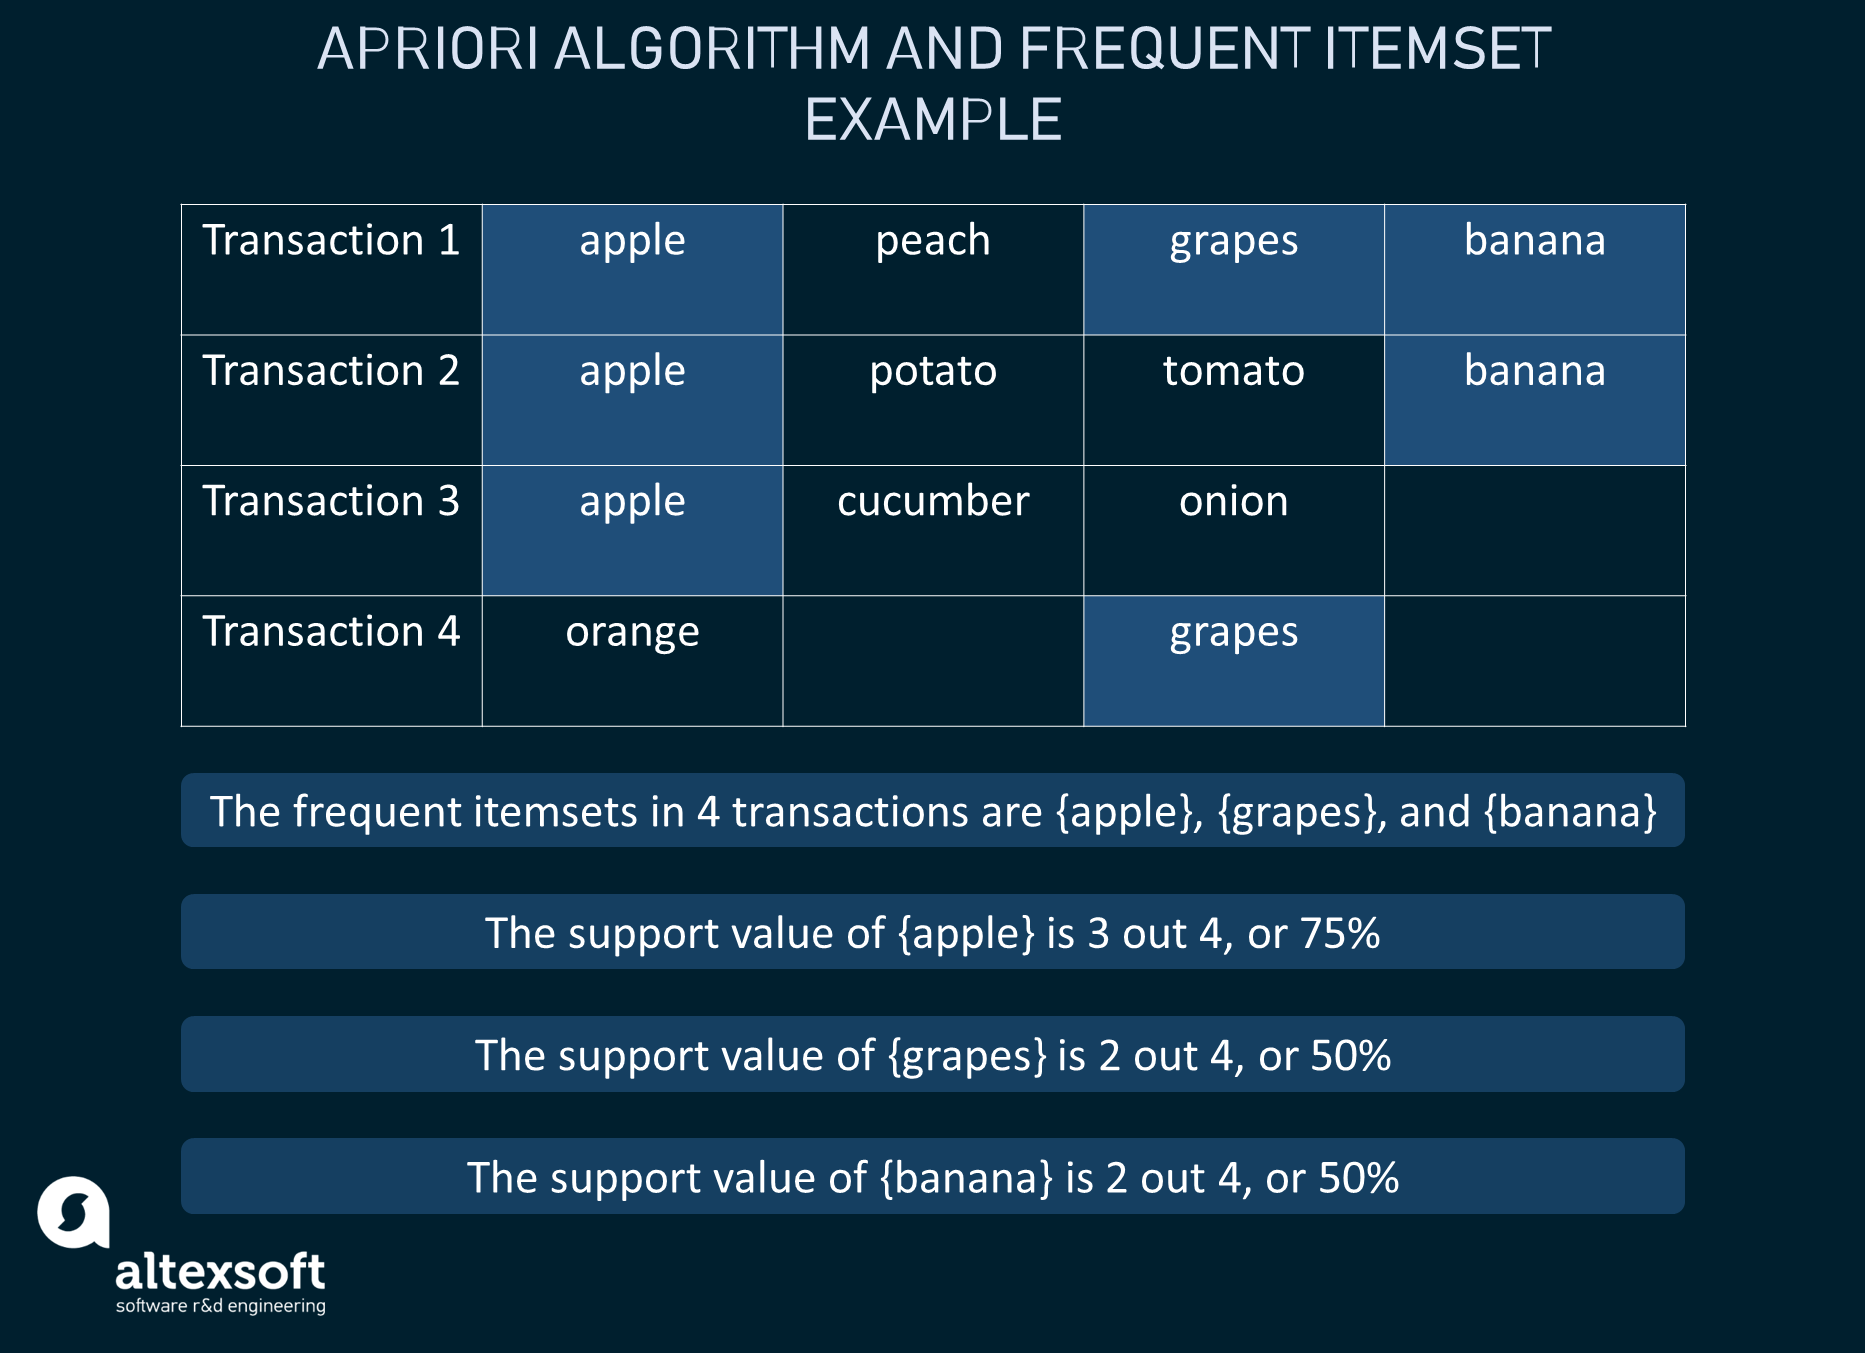 How frequent itemsets are singled out in the transactions